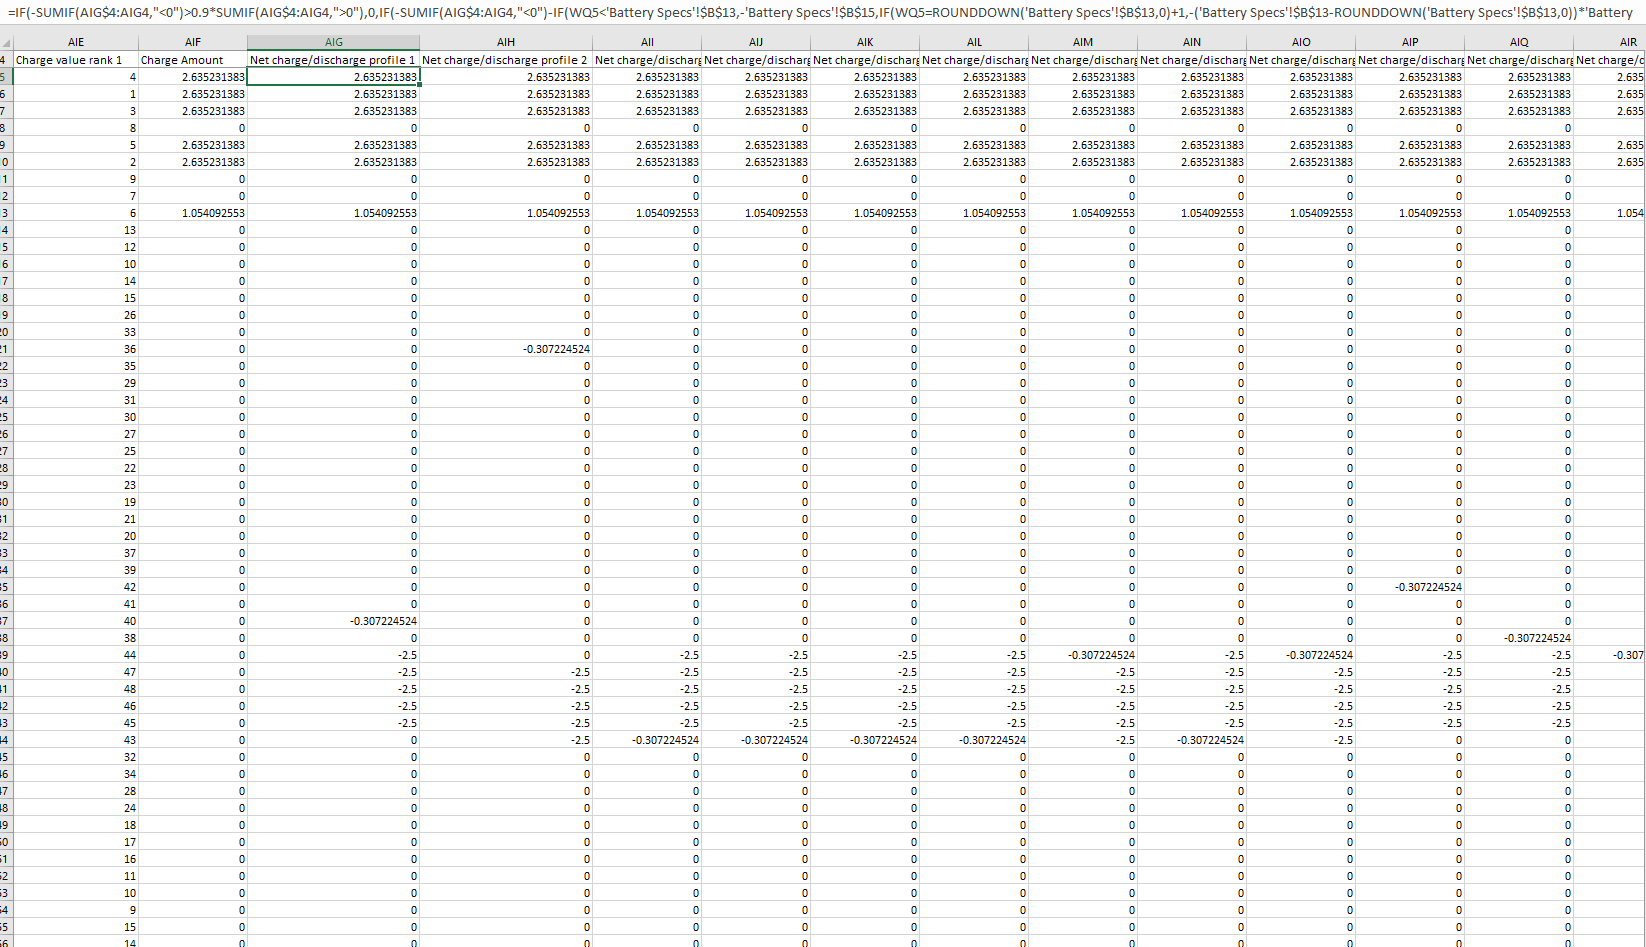 Calculate Excel Formulas In Vba But Display Only The Value In Excel